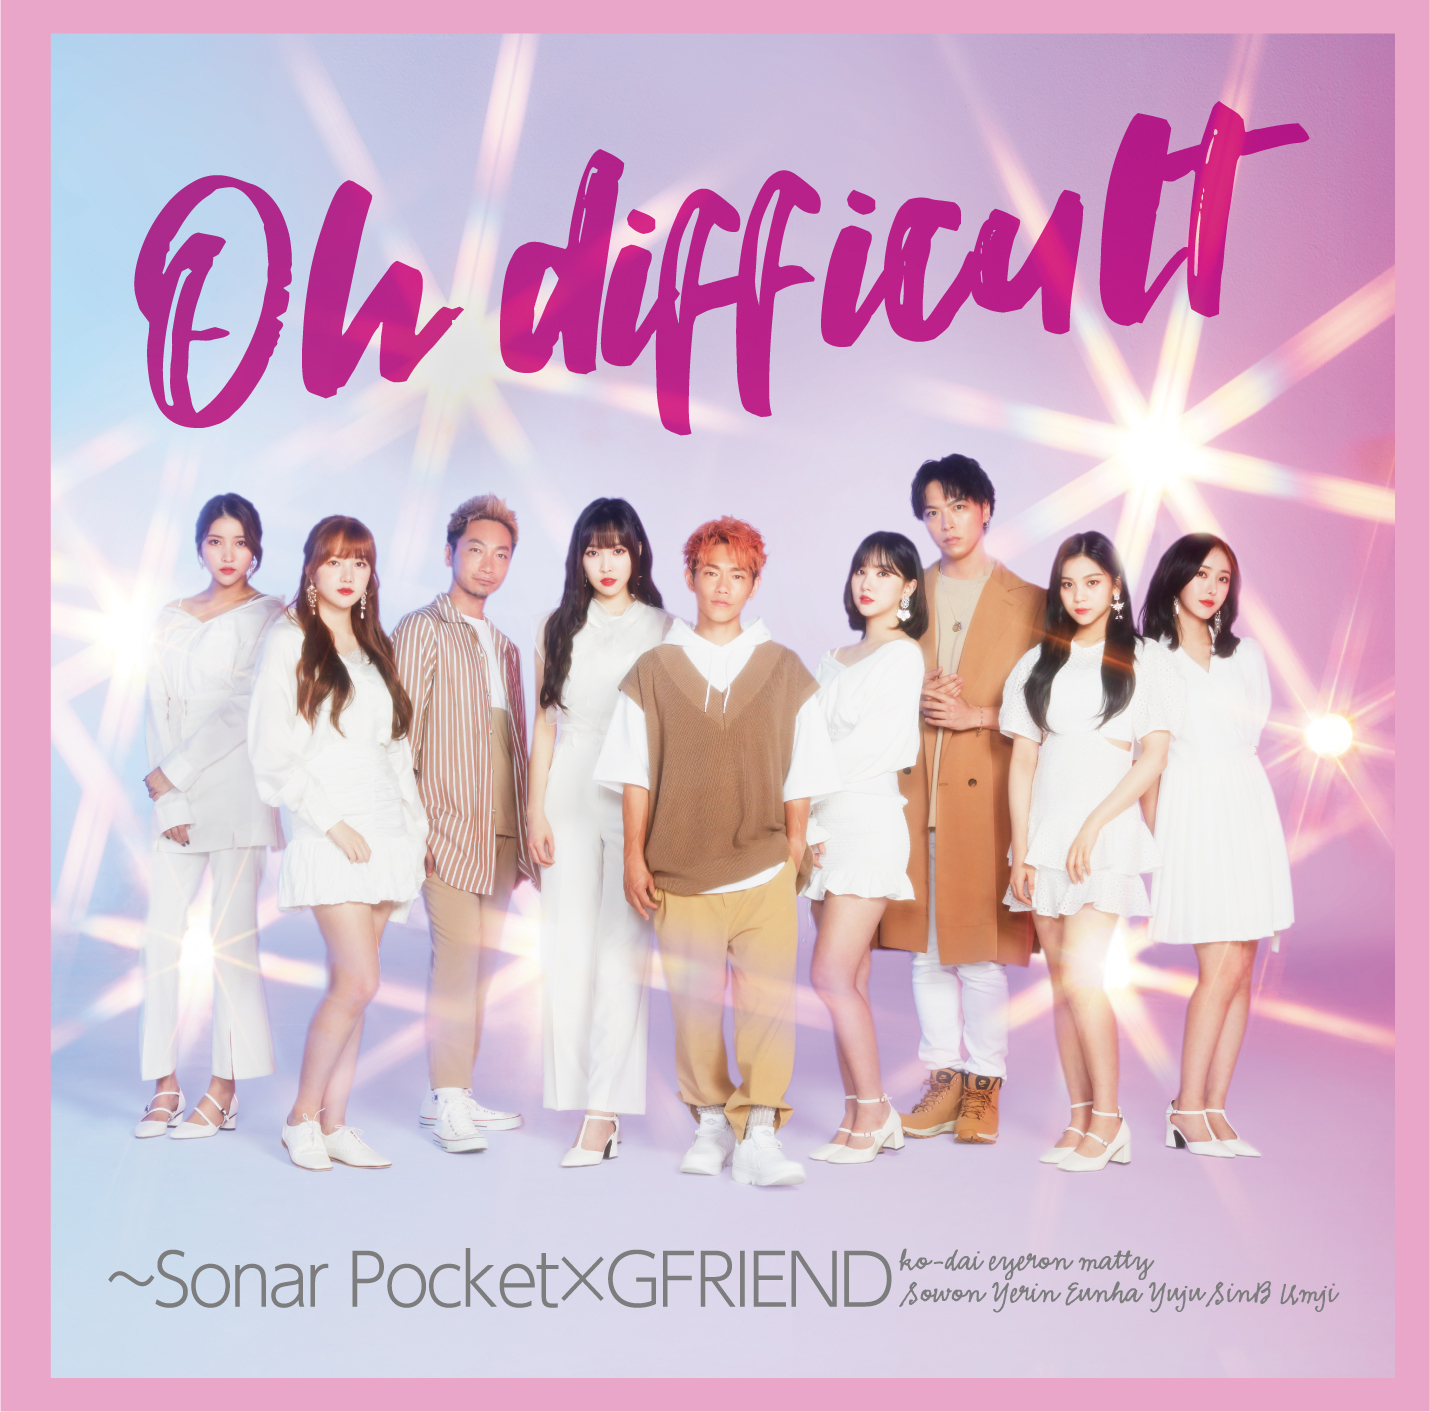 Sonar Pocket「Oh difficult ~Sonar Pocket×GFRIEND」初回盤A